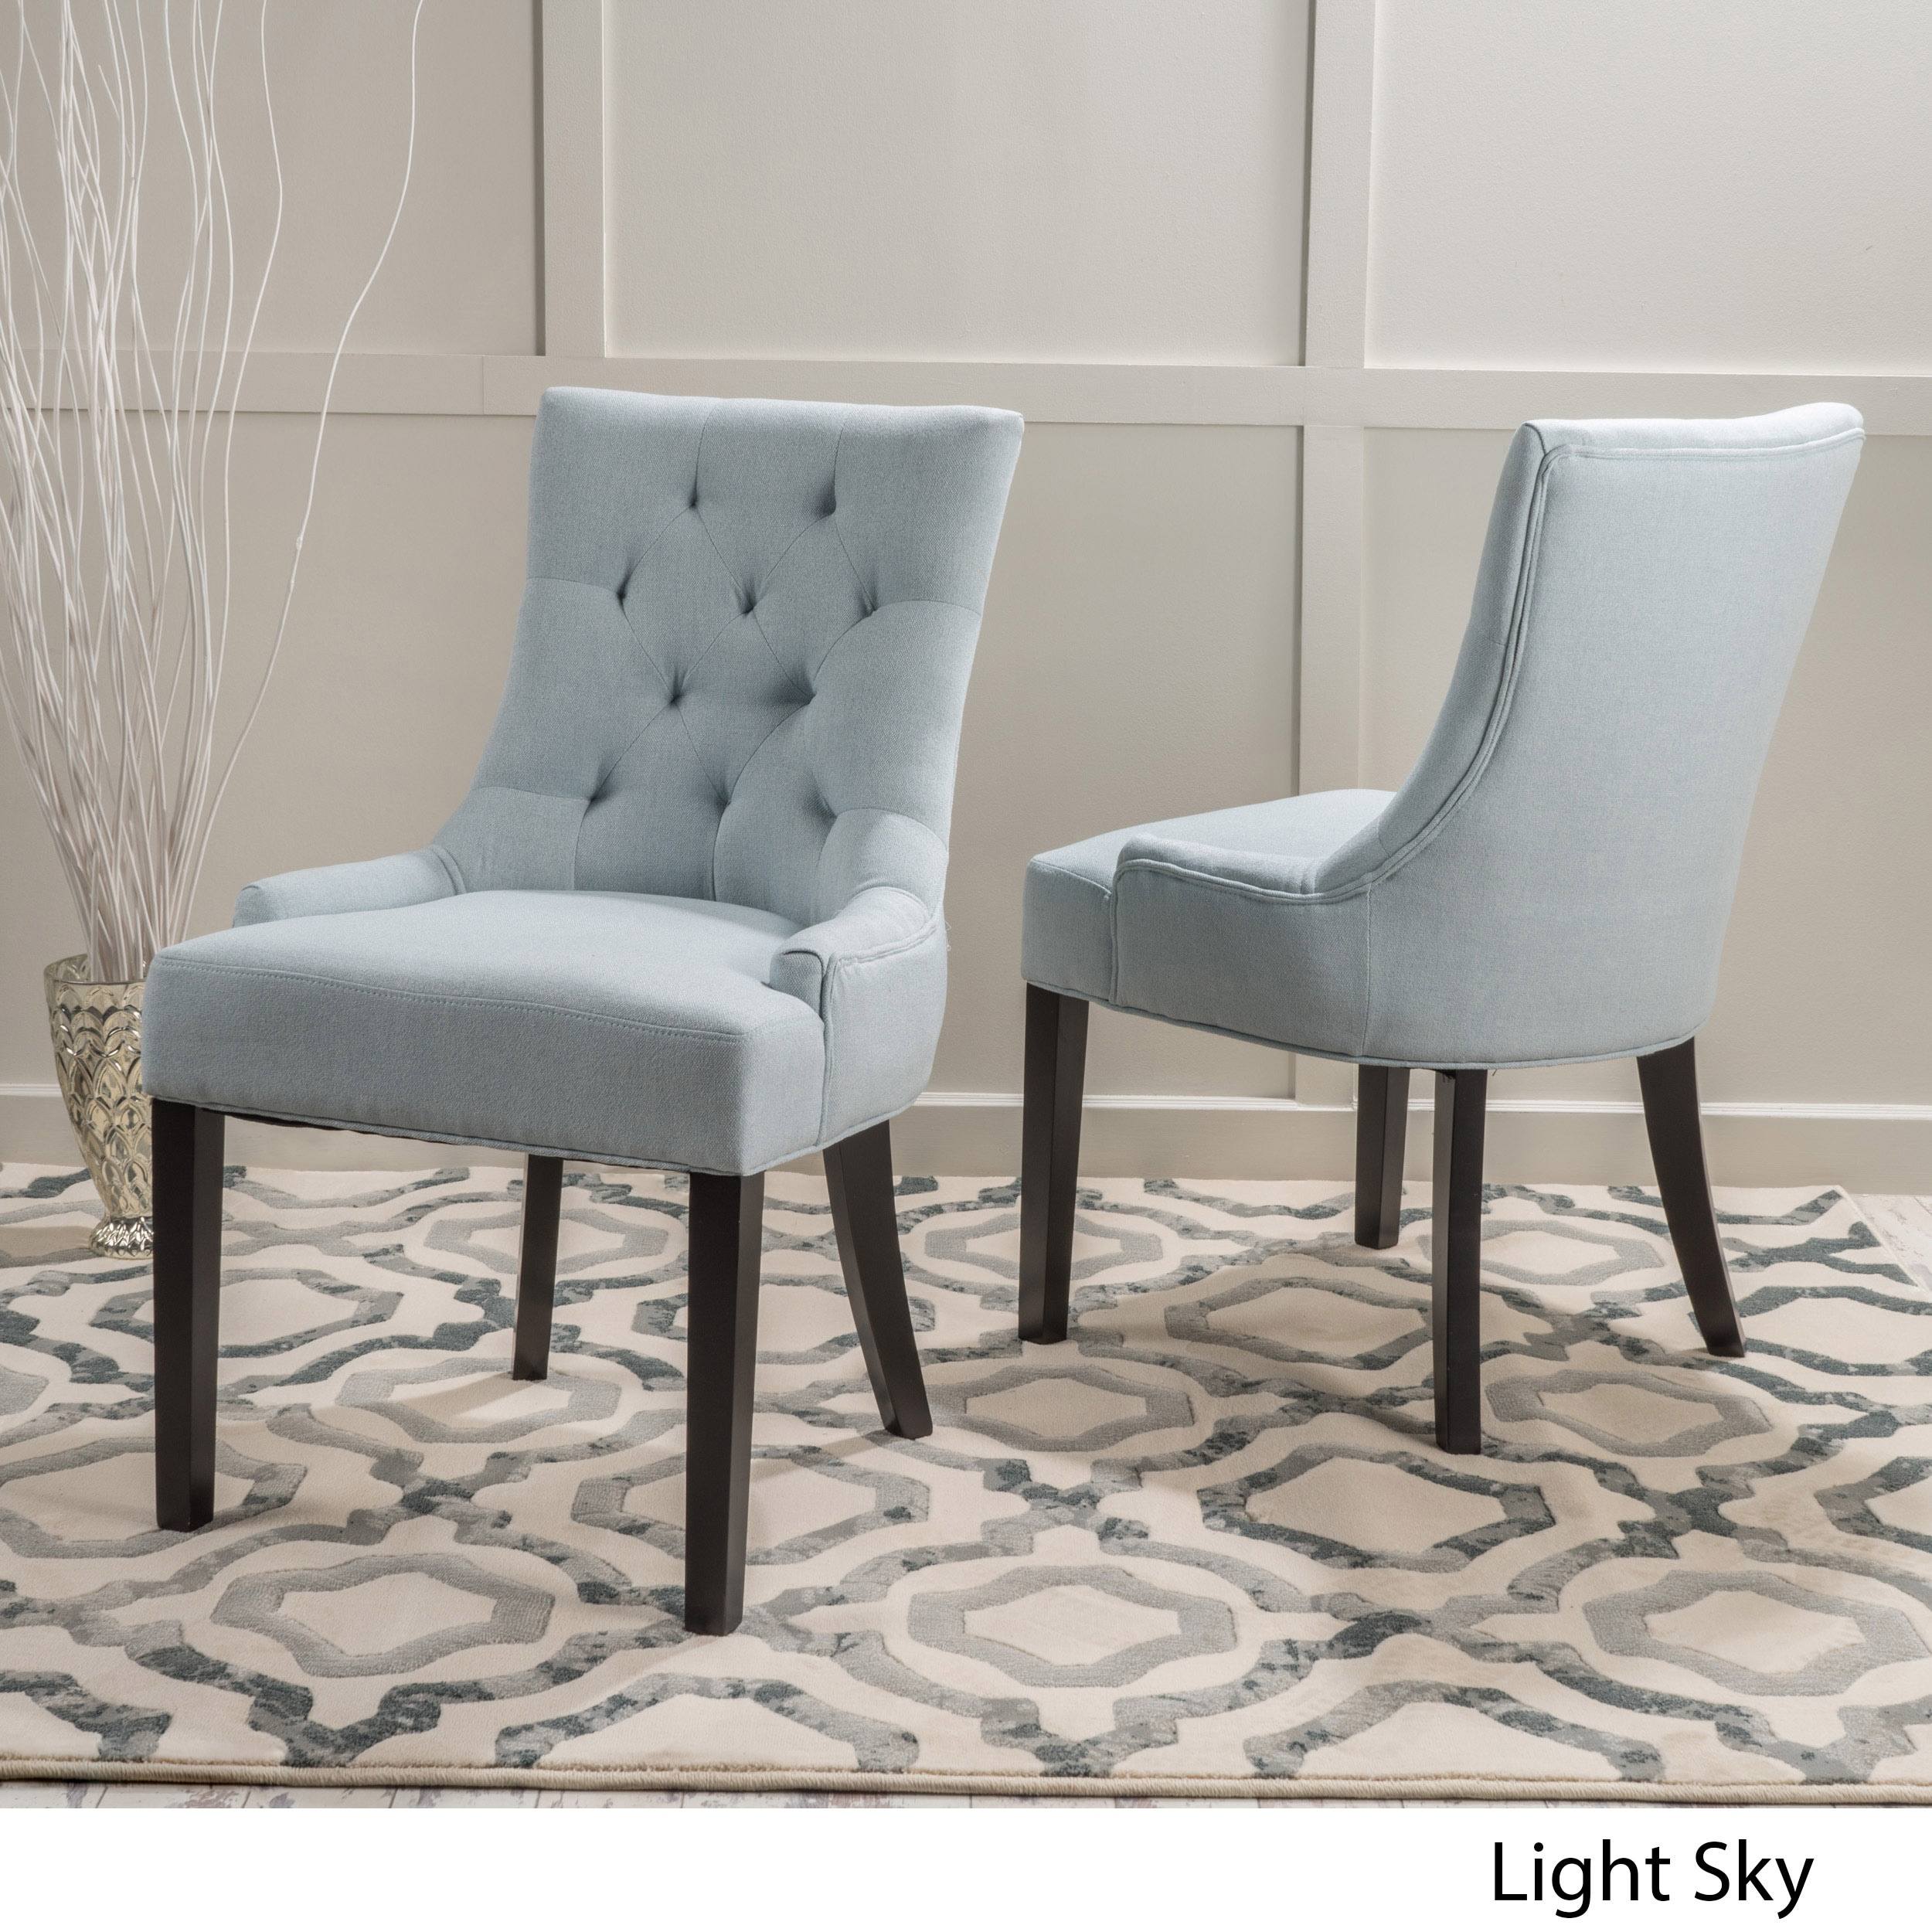 Dining Room Chairs Fabric: Find The Best Daily Deals On Overstock.com